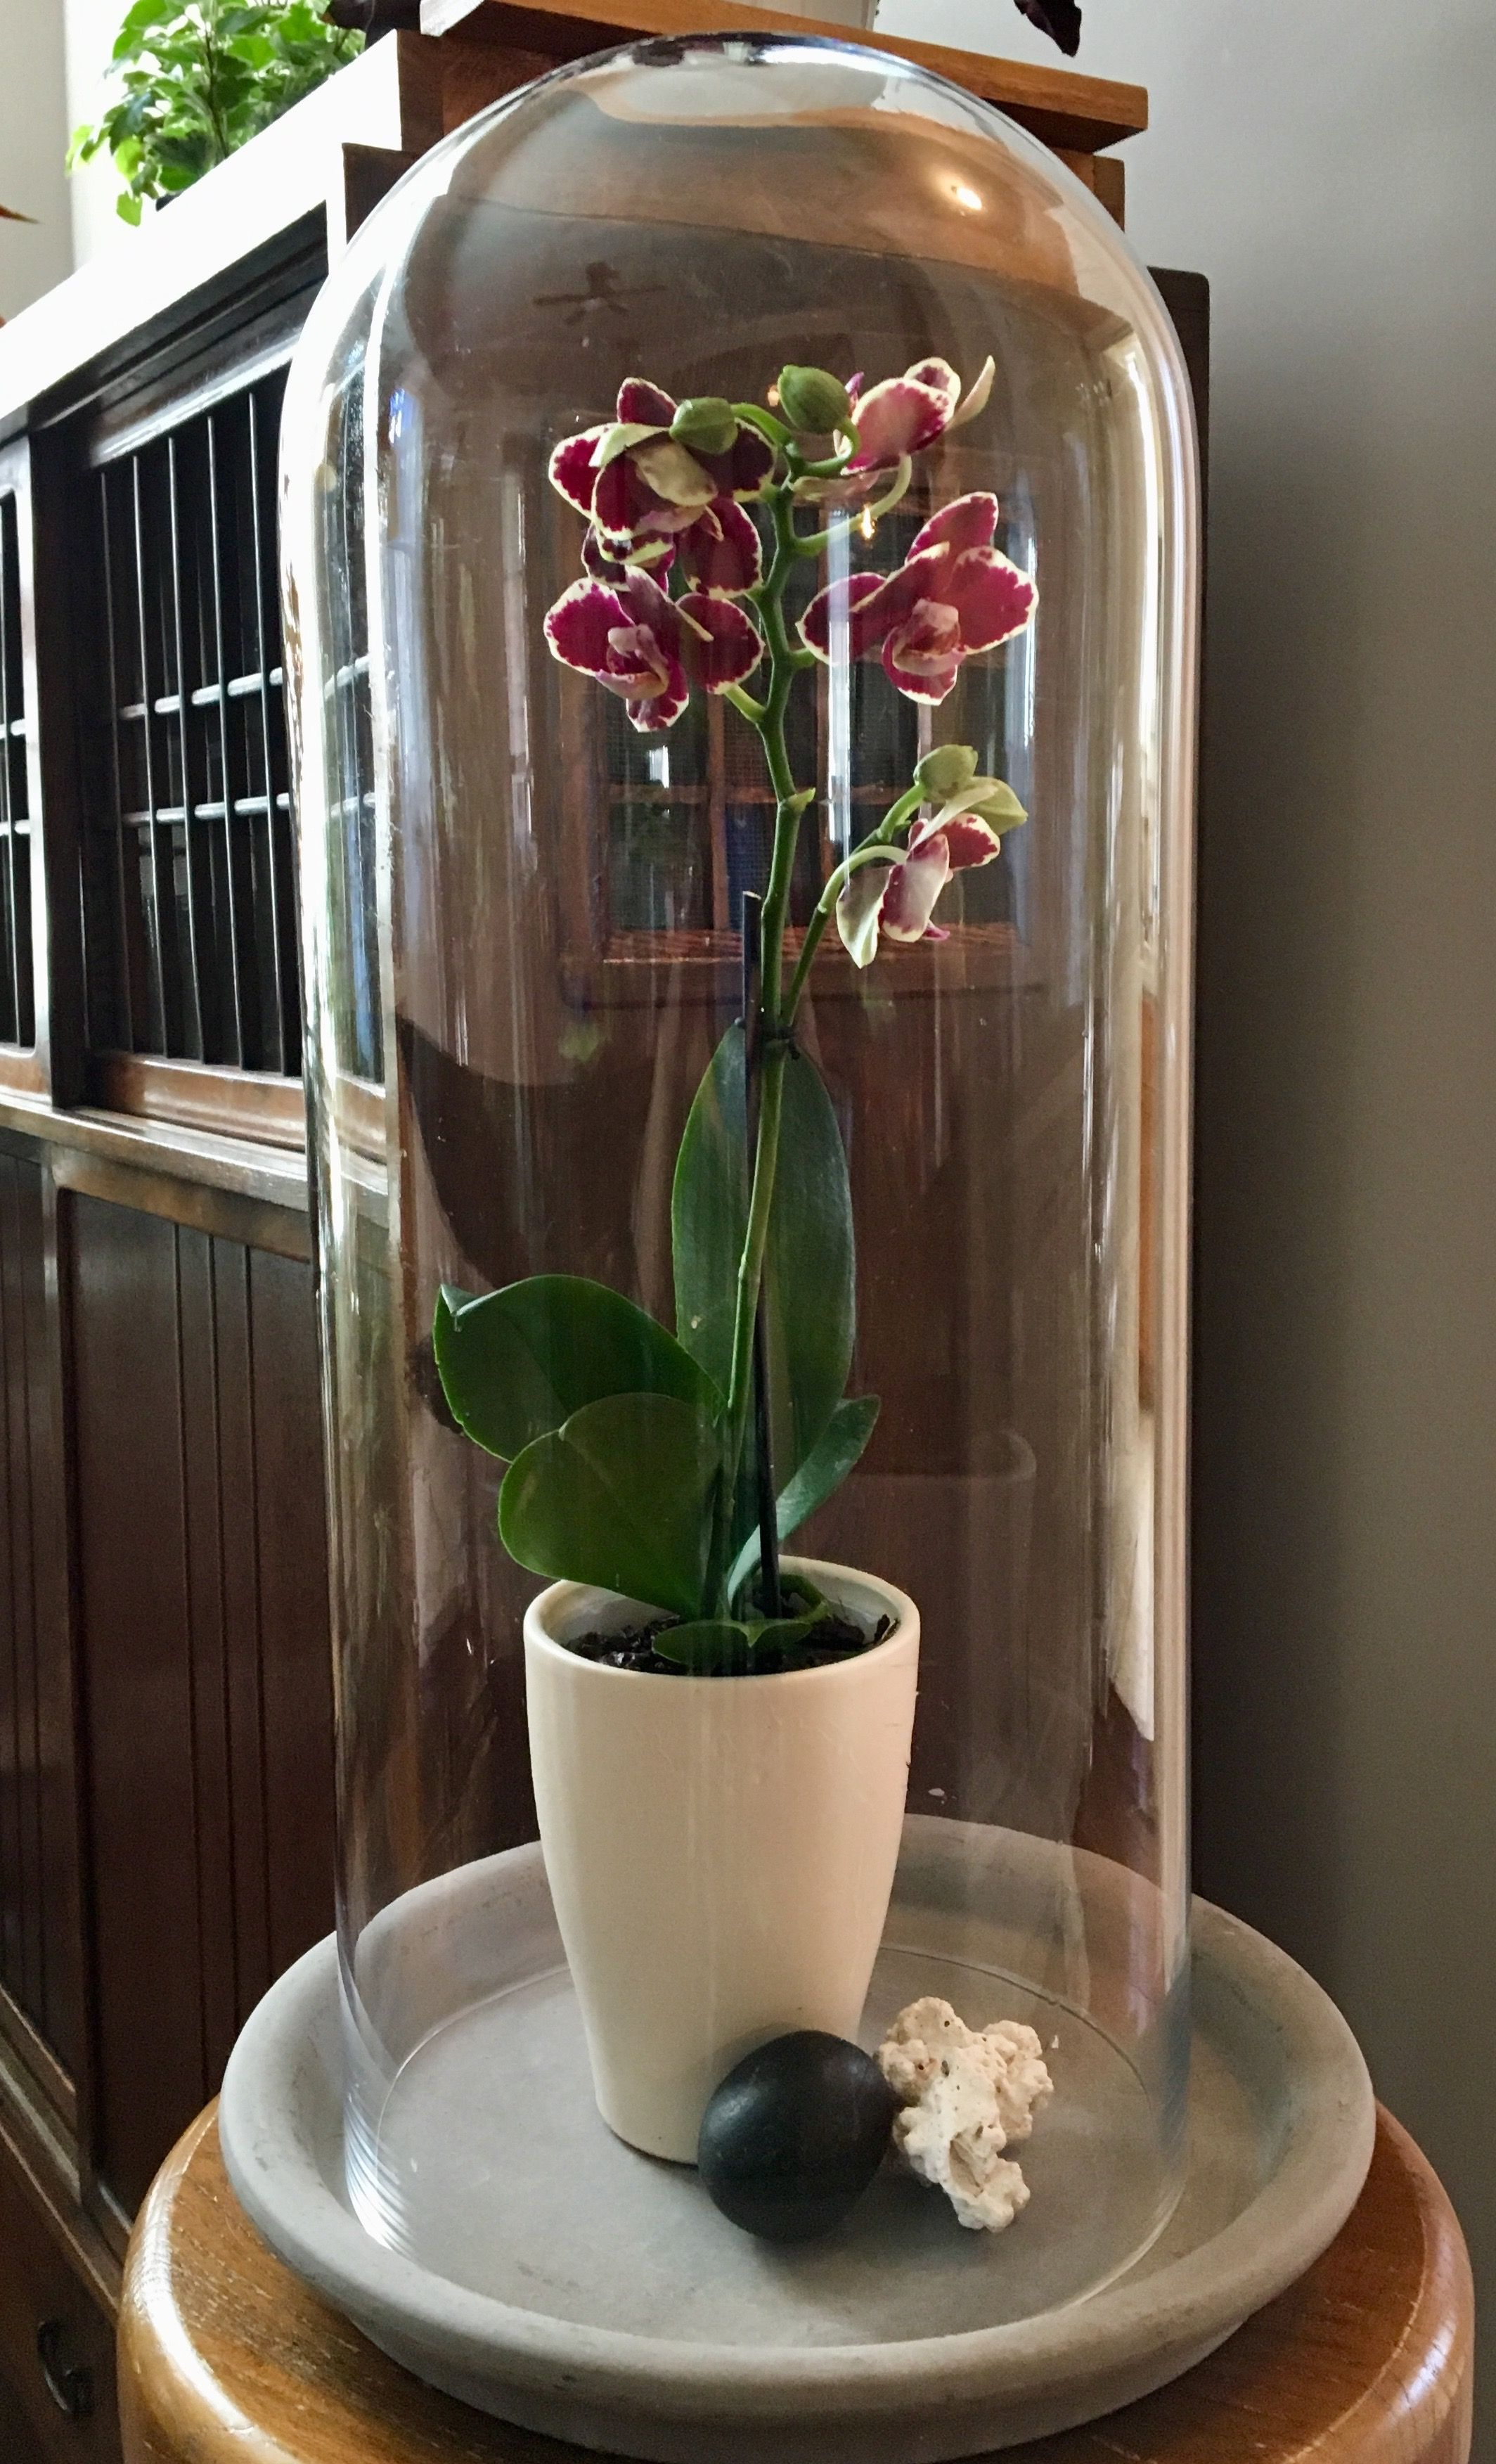 Orchid Under Cloche Orchid Flowers Last For Months Under A Cloche Created By Floraphile Garden Design Orchid Flower Garden Design Orchids